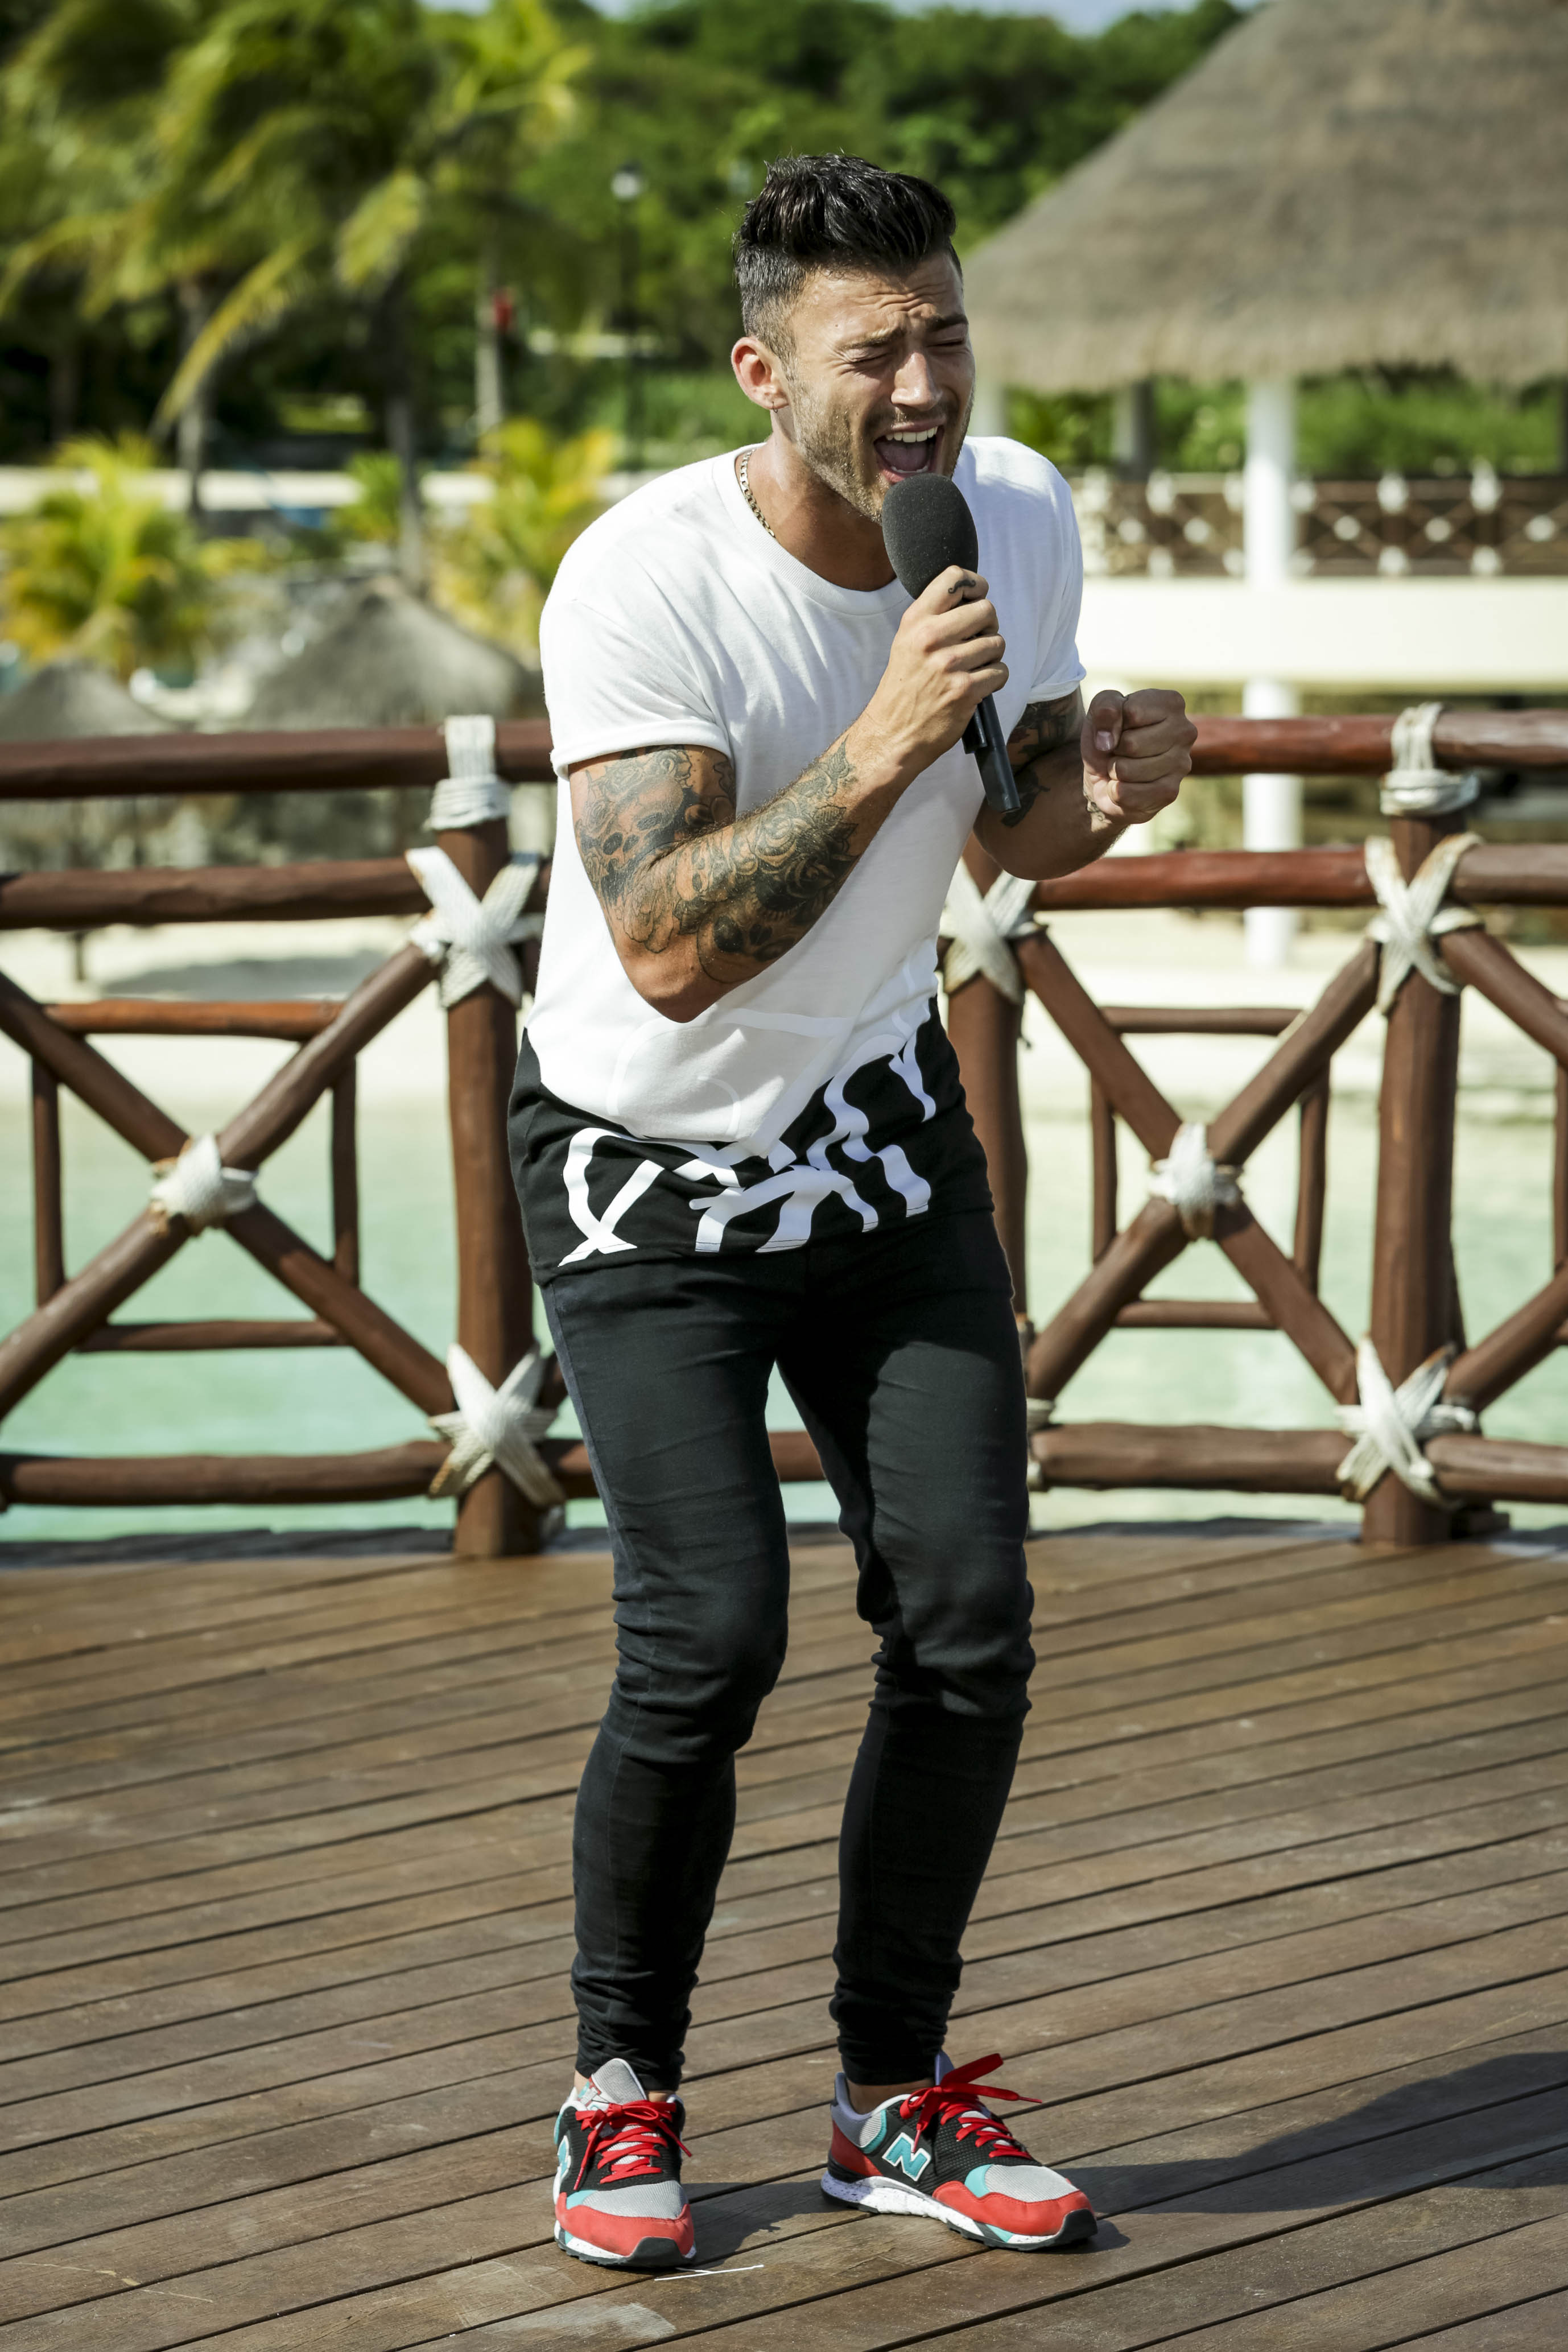 X Factor 2014: Comeback kings Jake Quickenden and Paul Akister get through to live shows